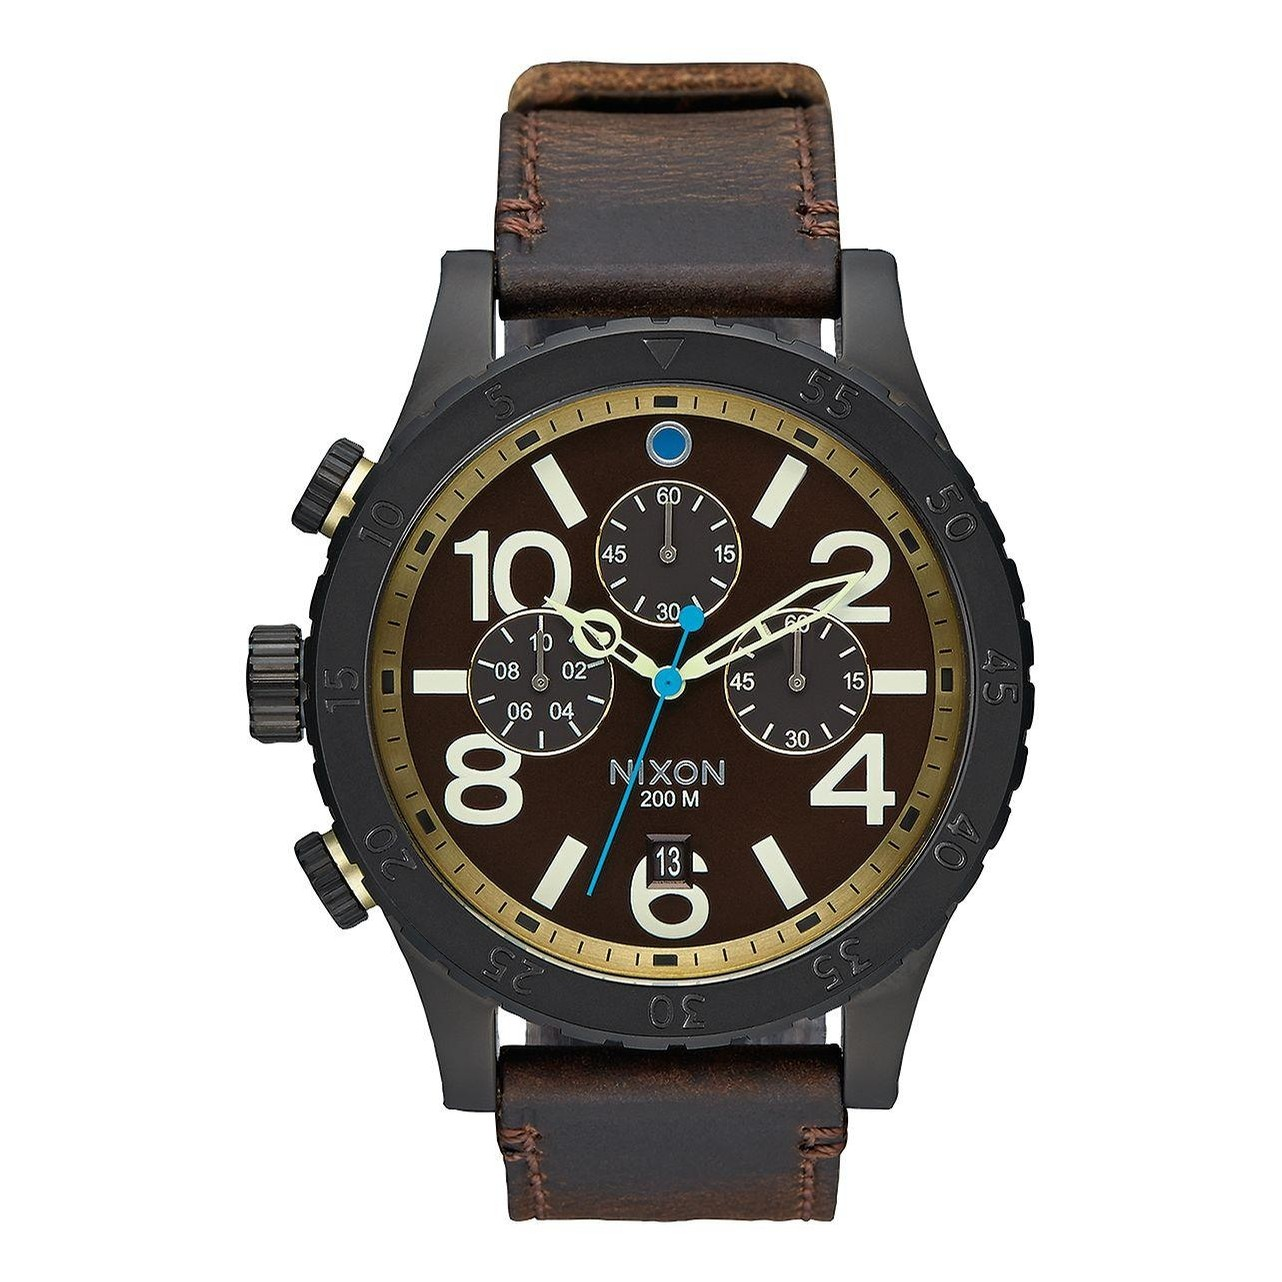 48-20 Chrono Leather (All Black/Brass/Brown)